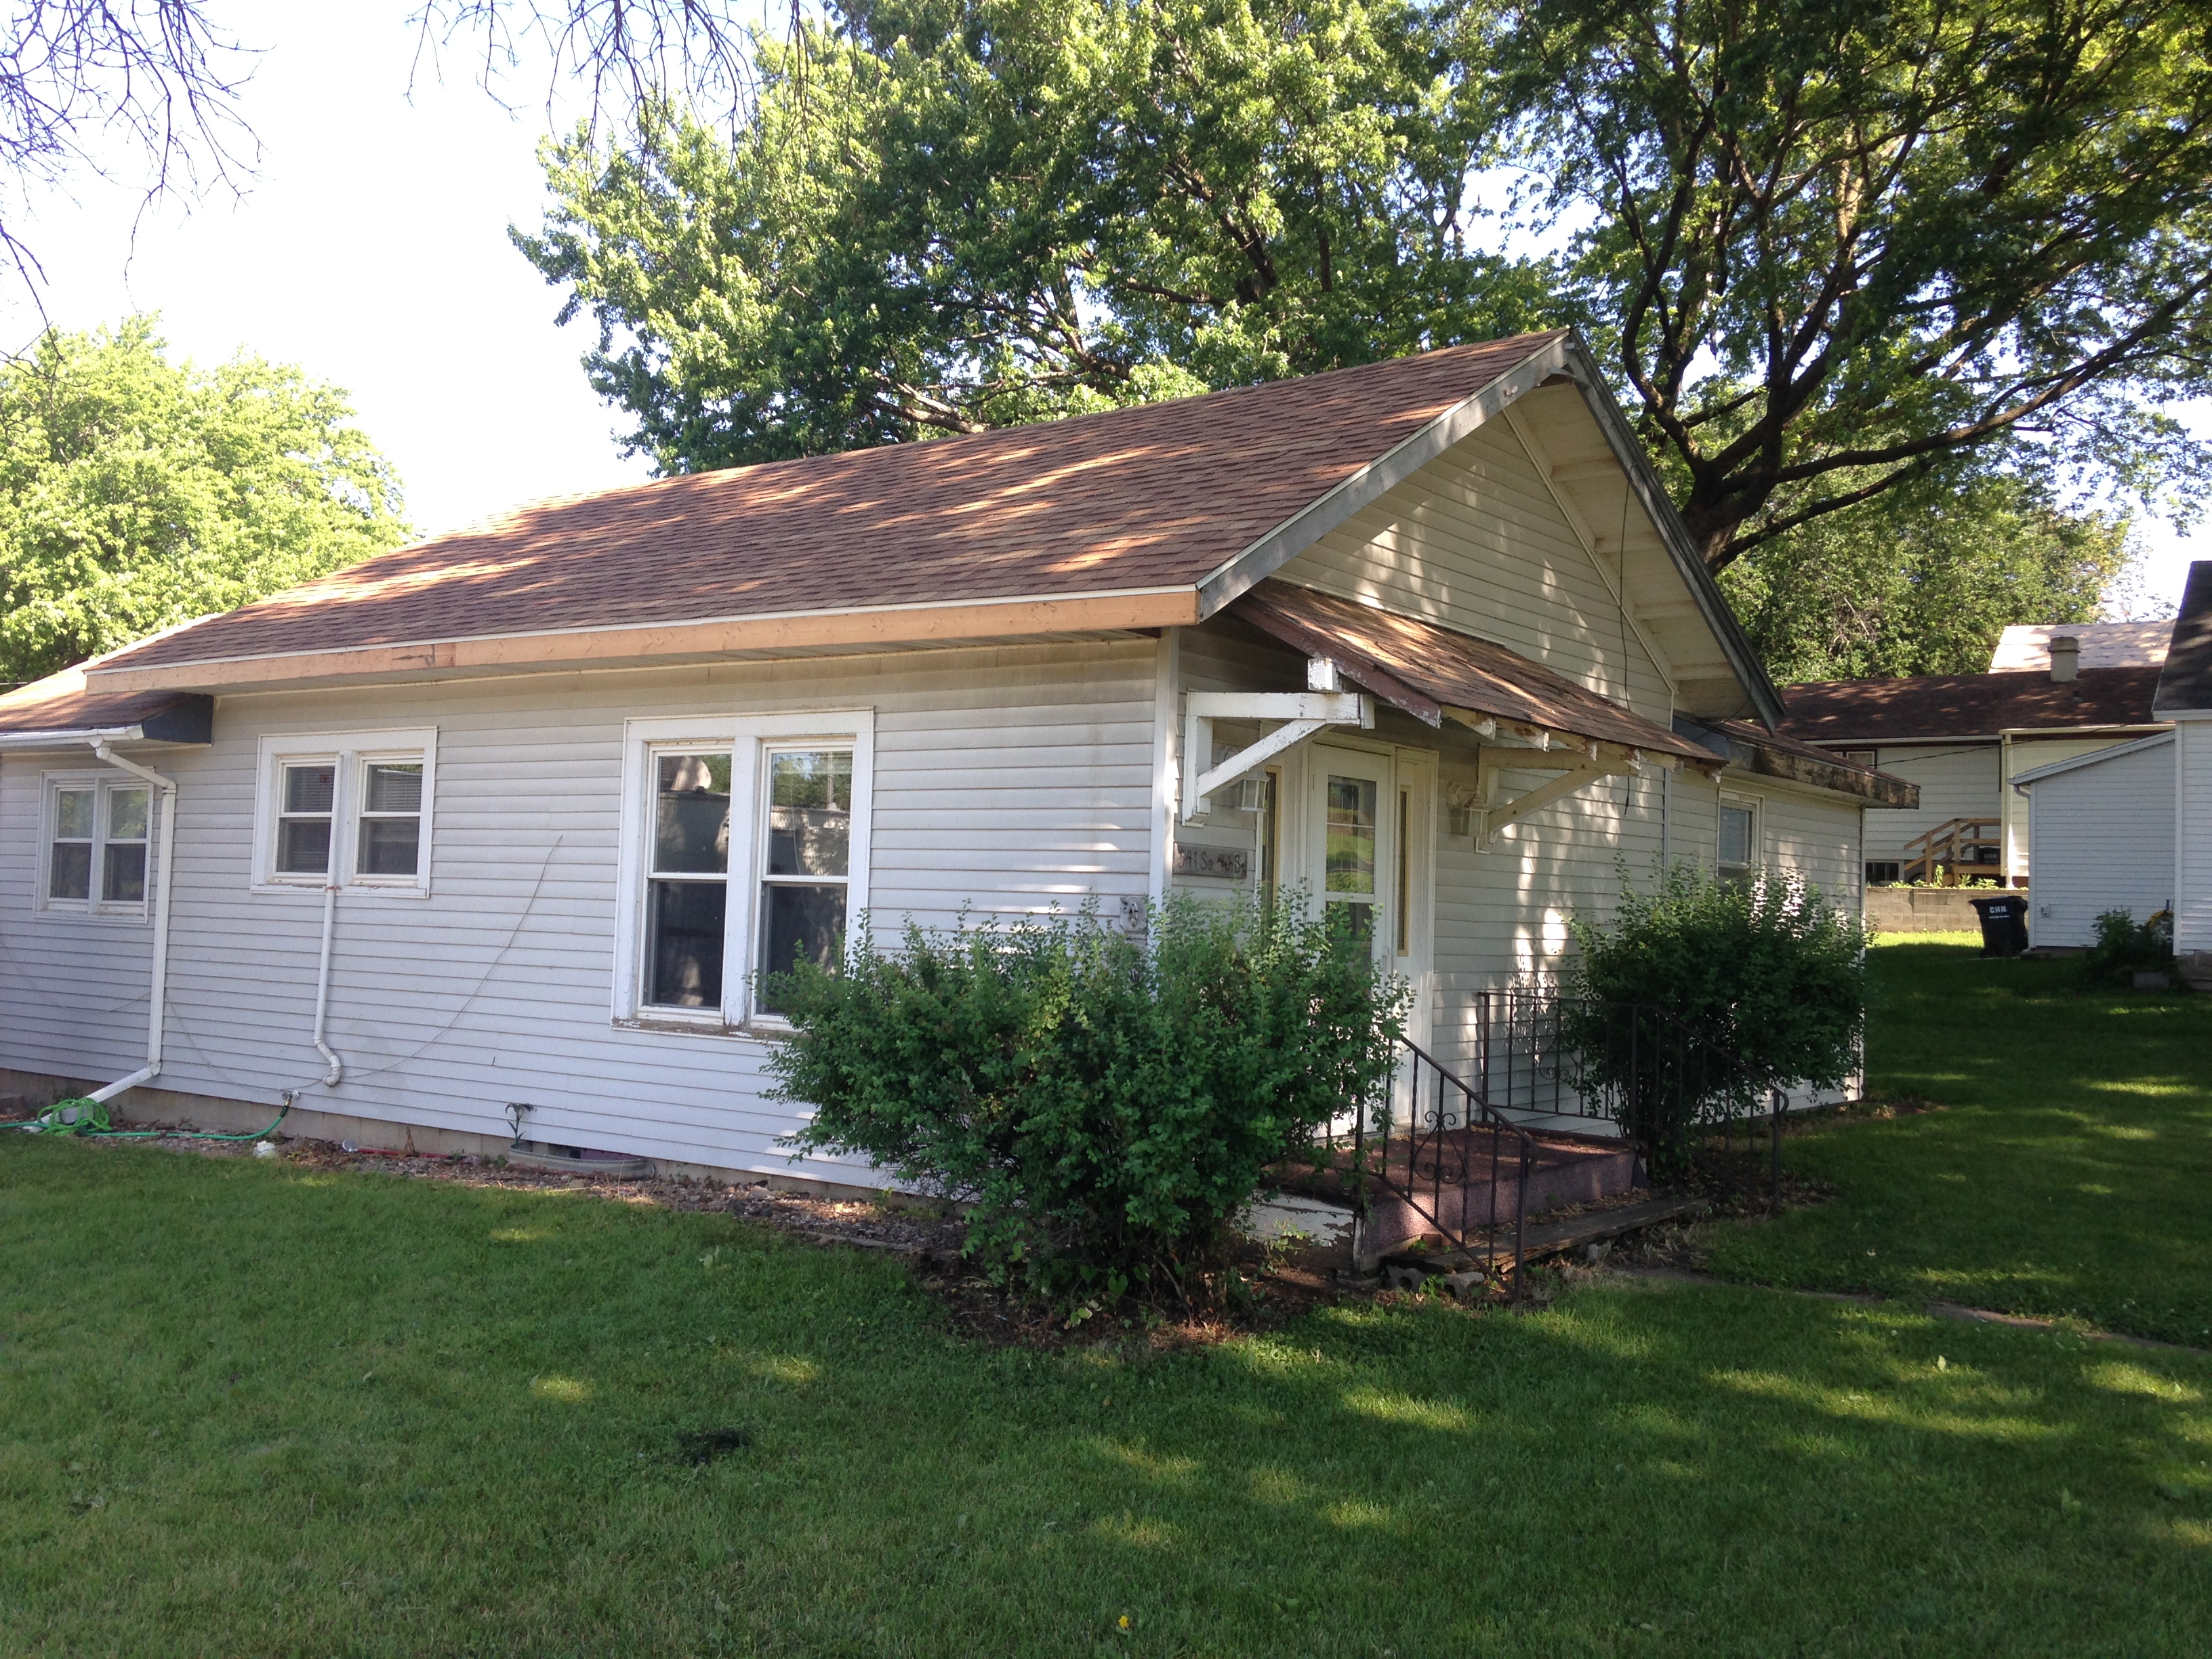 541 S 4th Street, Moville, IA 51039